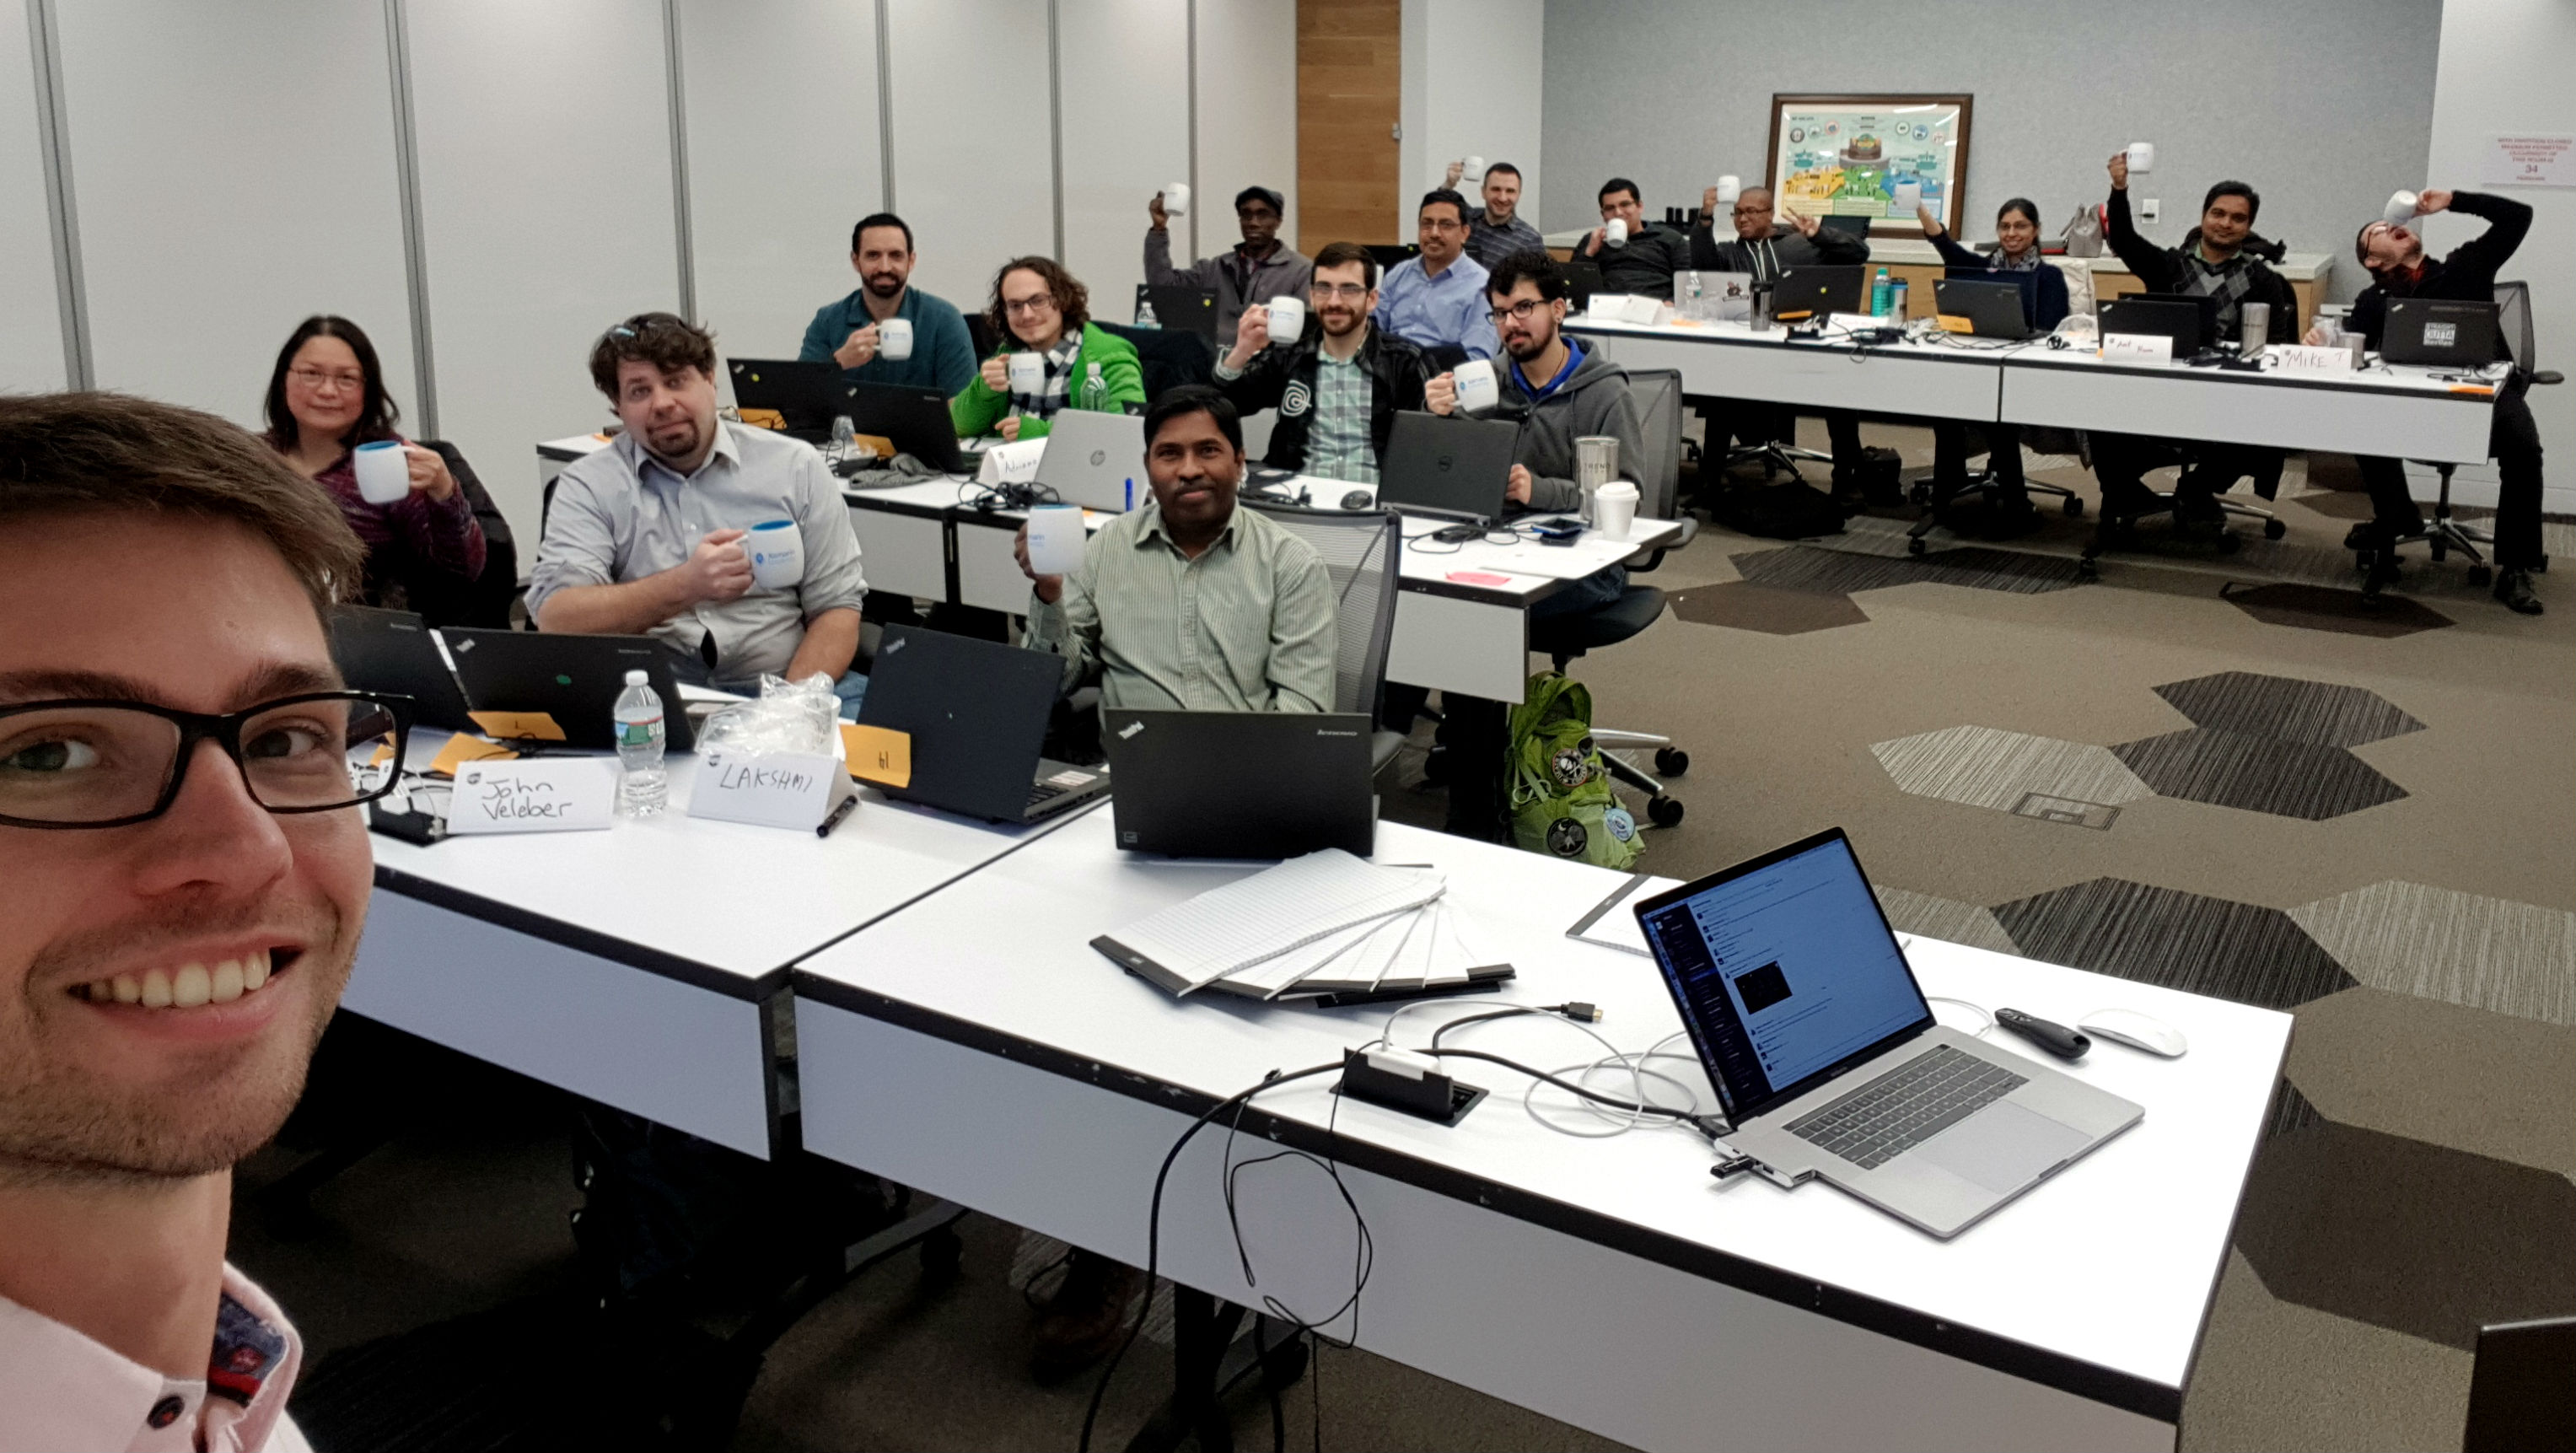 Xamarin training at UPS Innovation Center